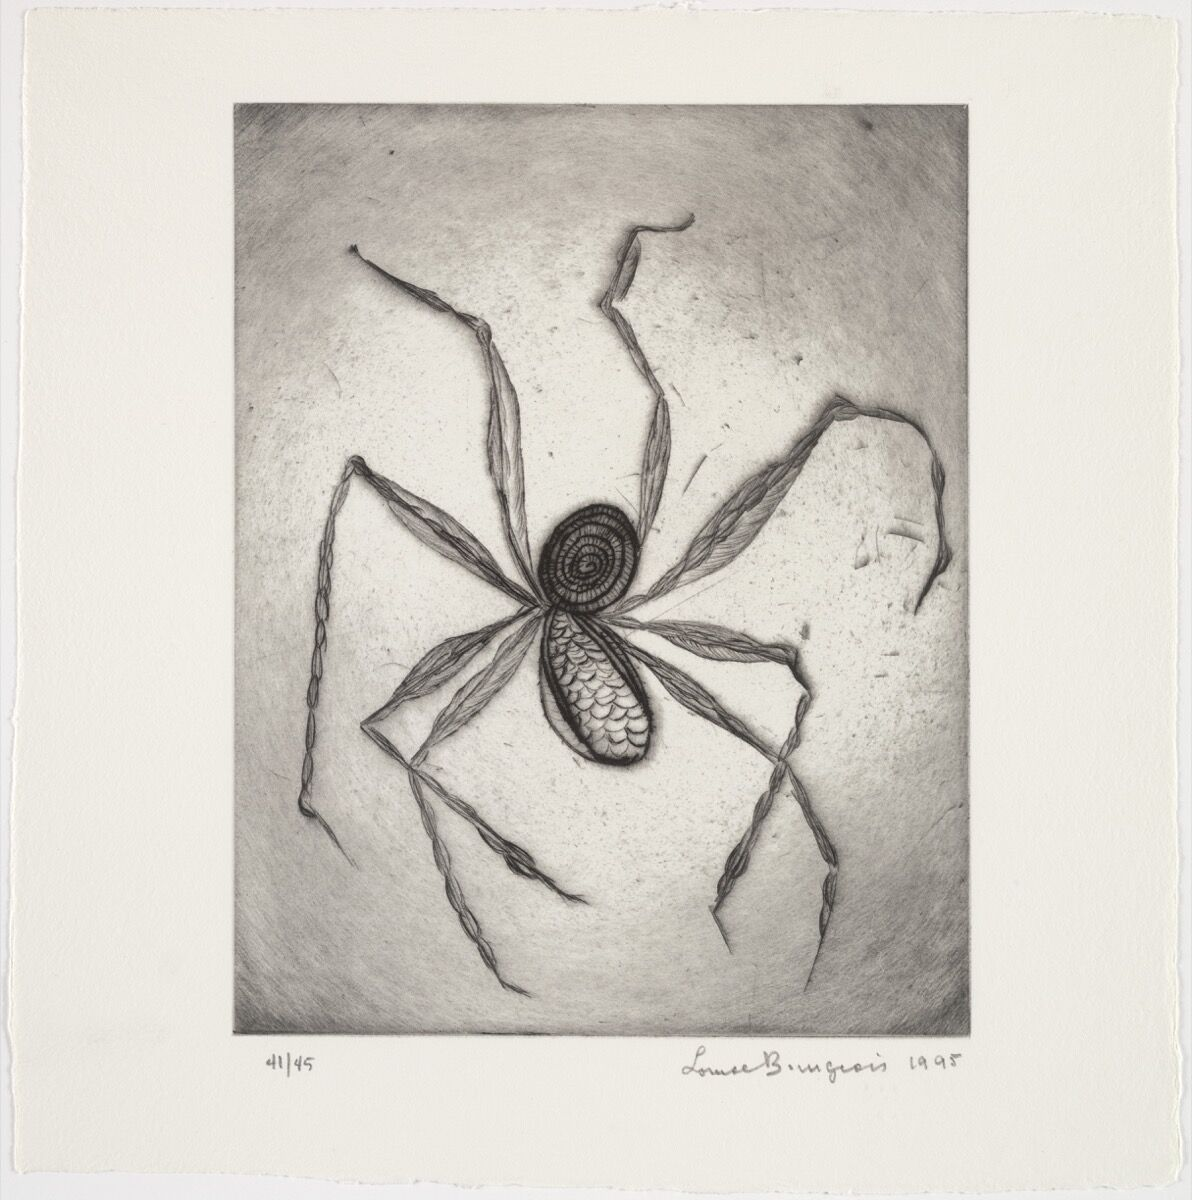 Louise Bourgeois,Plate 8 of 9 from the illustrated bookOde à Ma Mère, 1995. The Museum of Modern Art, New York. © 2017 The Easton Foundation/Licensed by VAGA, NY. Courtesy of the Museum of Modern Art.